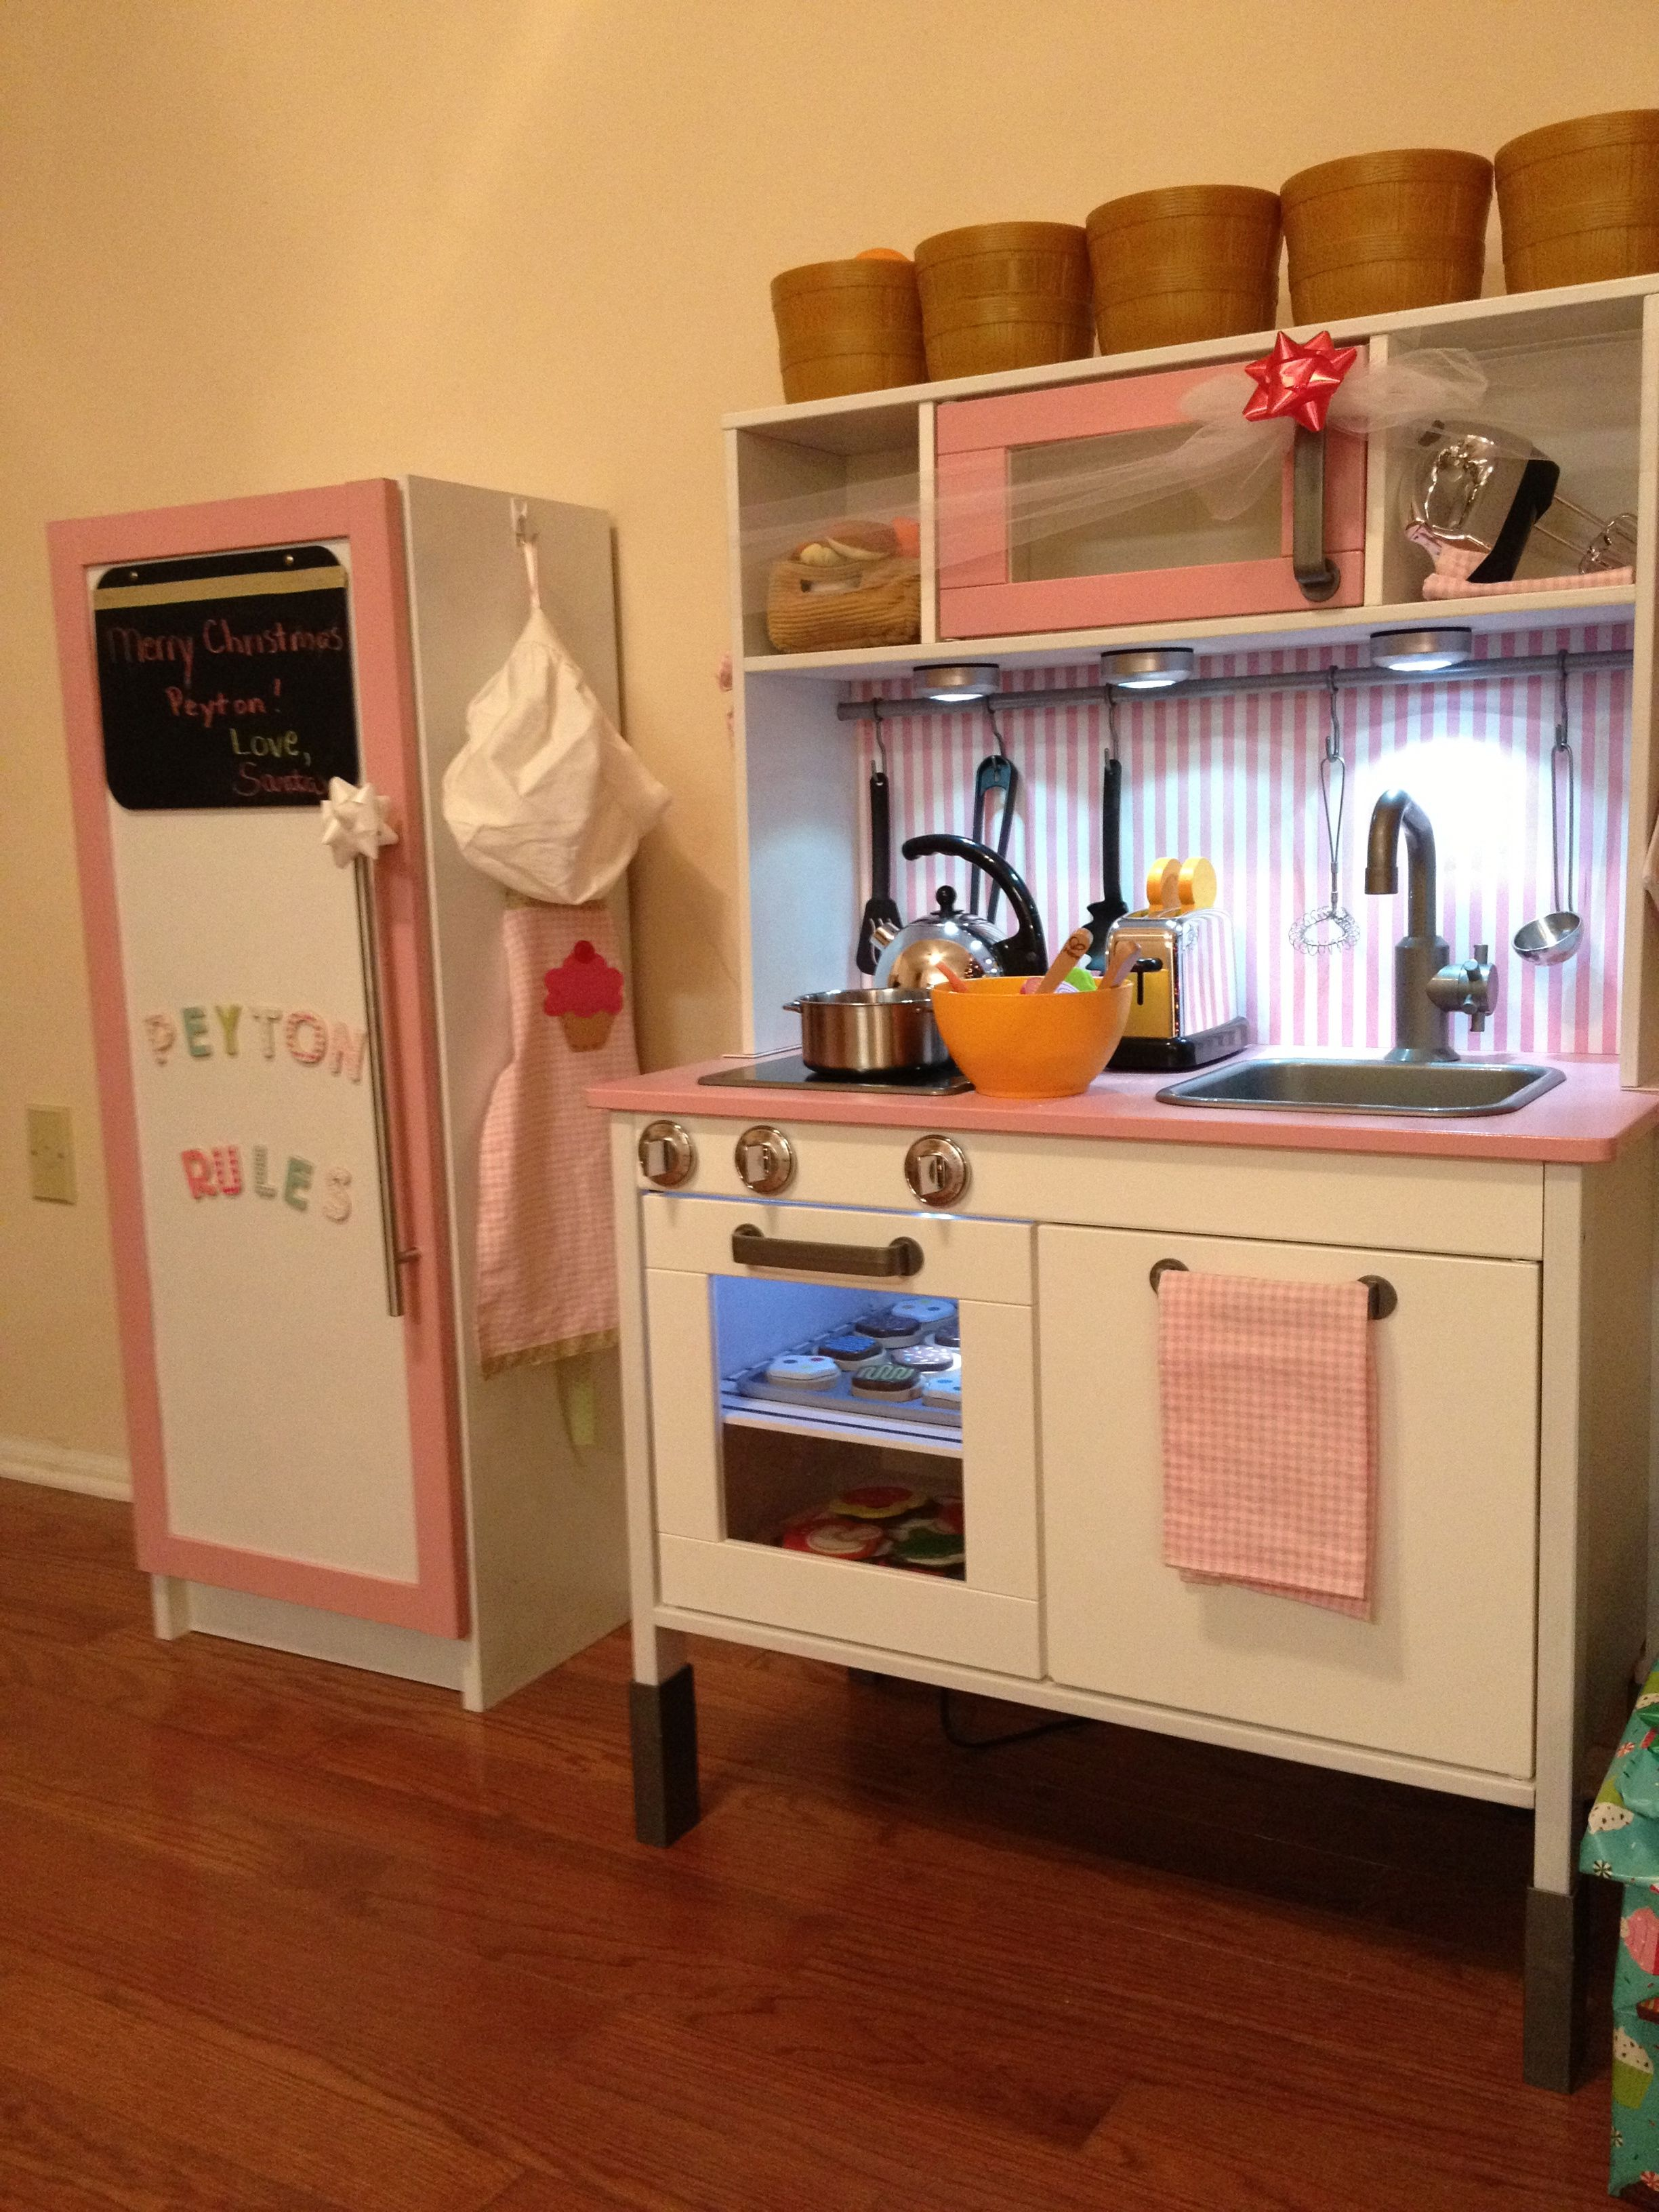 Ikea Duktig Küche Streichen The 5 Best Diy Play Kitchens Kids Christmas Ikea Play Kitchen